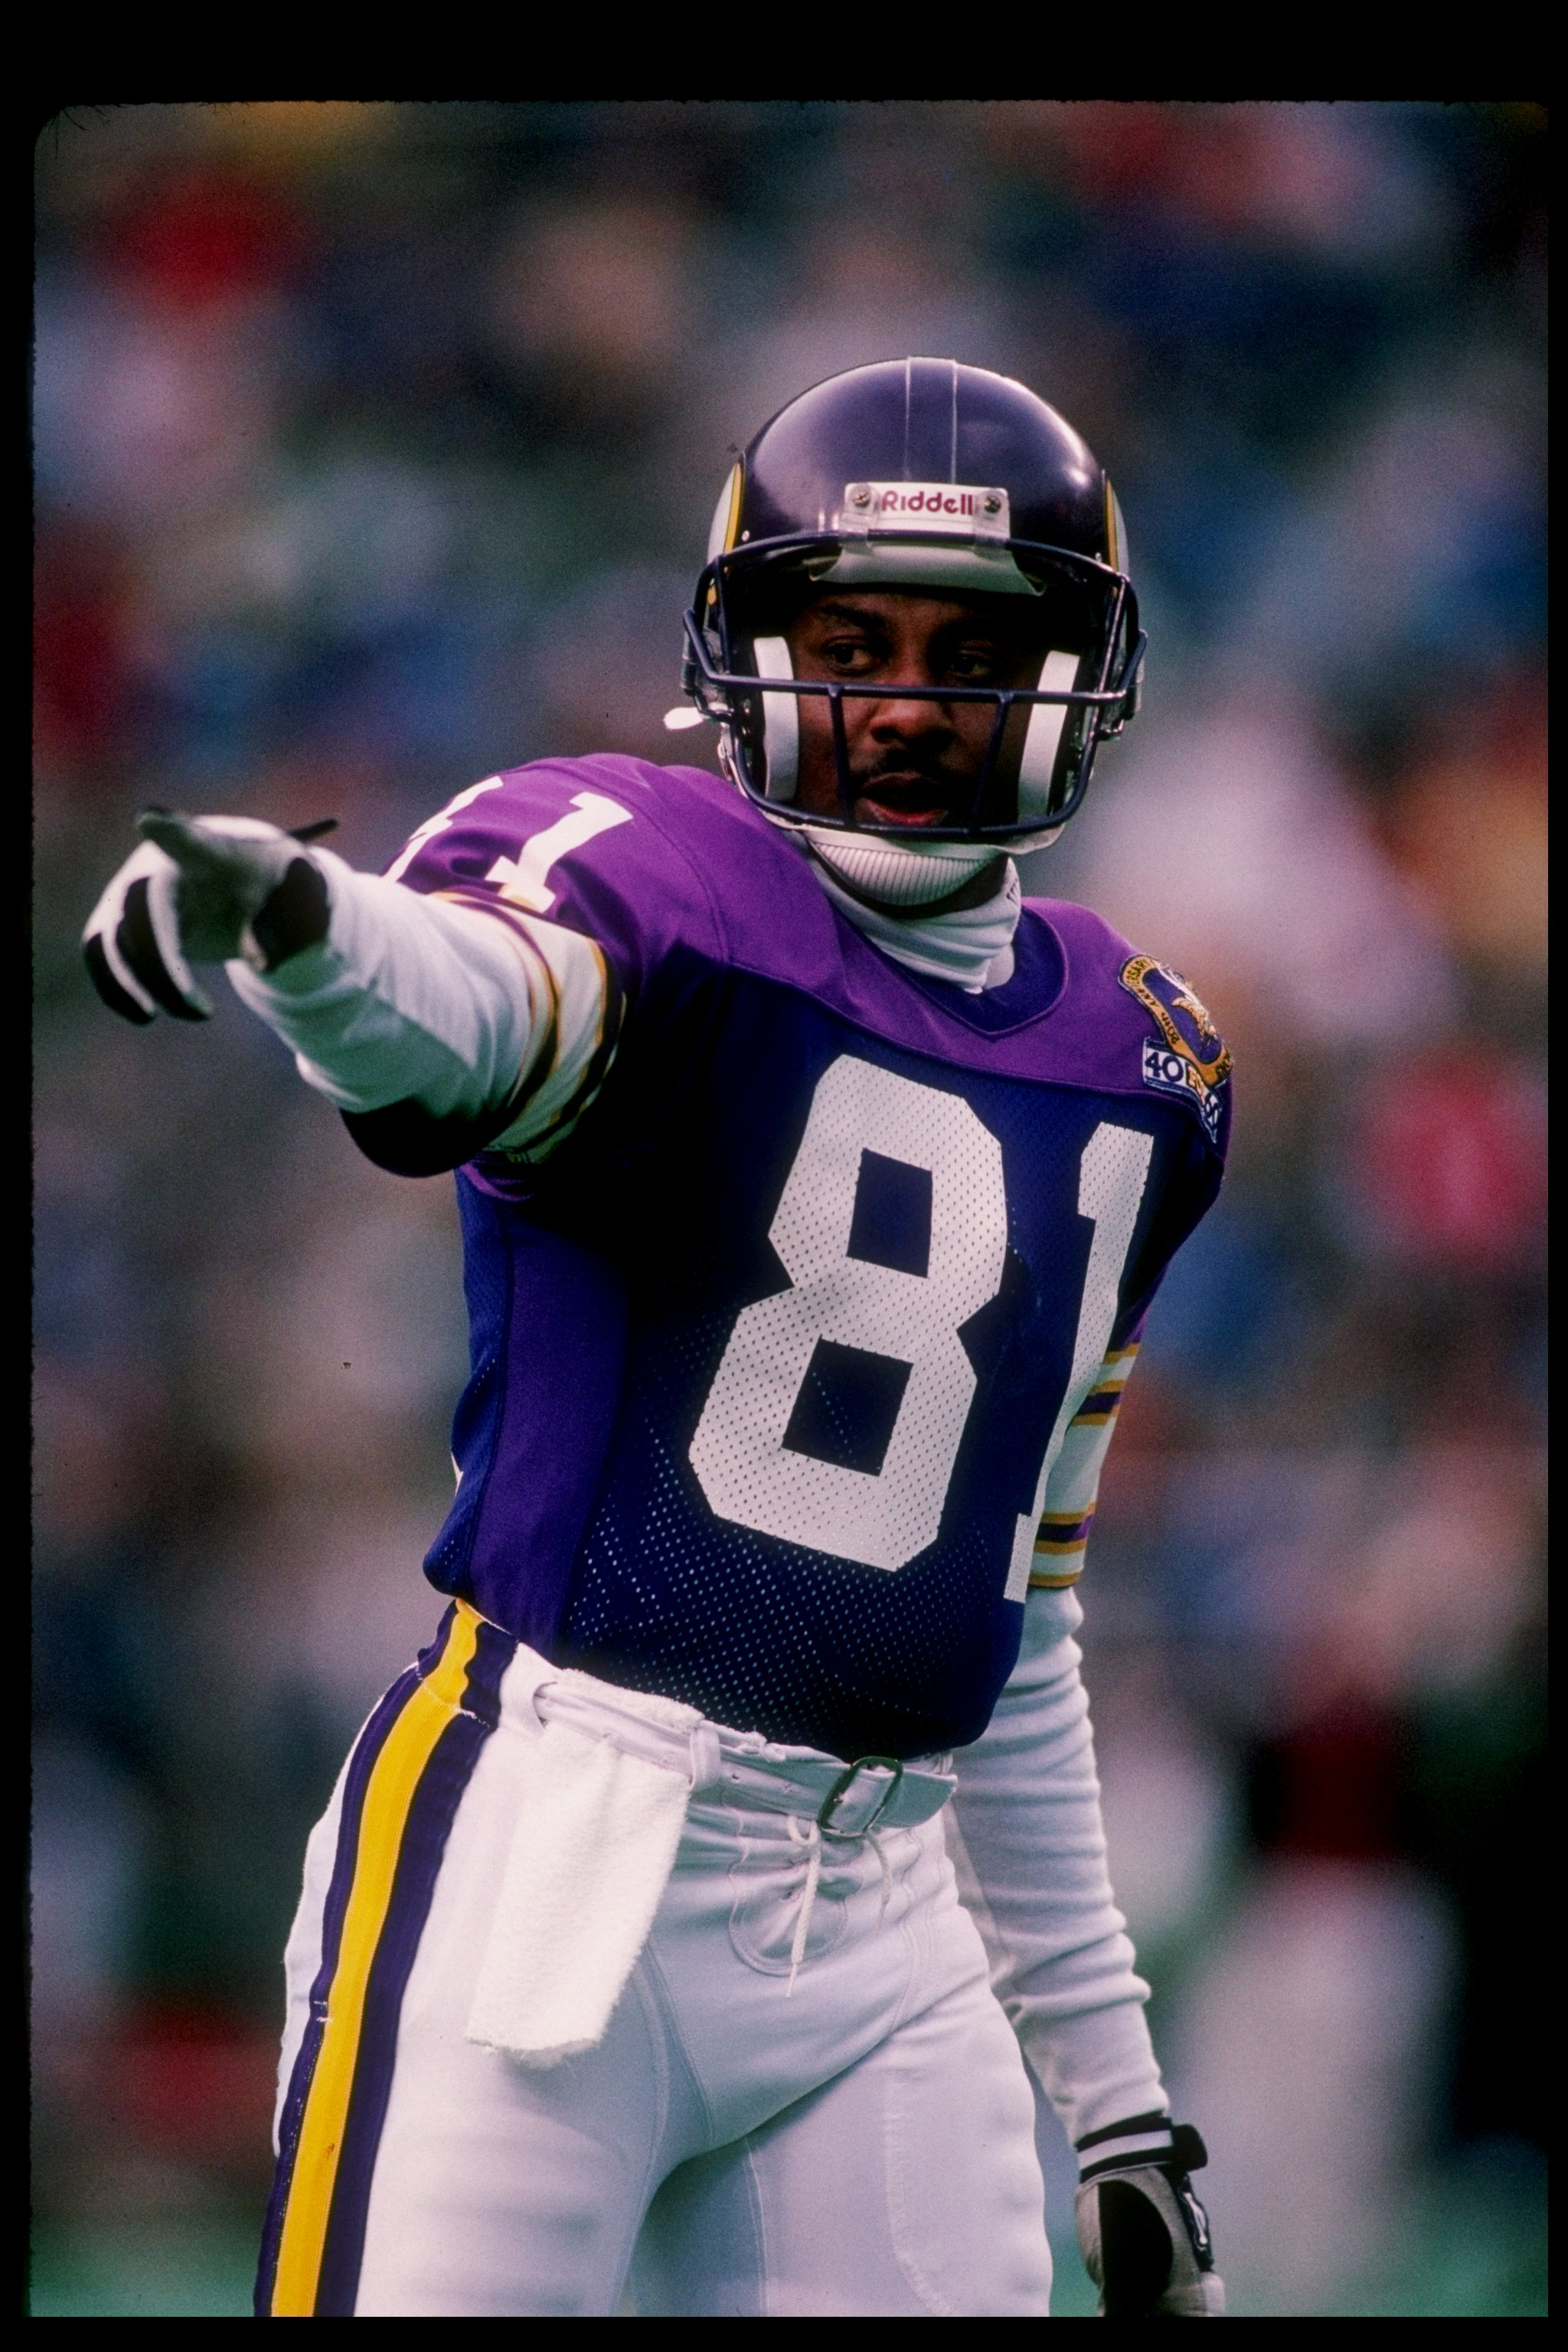 acf74ee21c9 19 Nov 1989  Wide receiver Anthony Carter of the Minnesota Vikings in  action during a